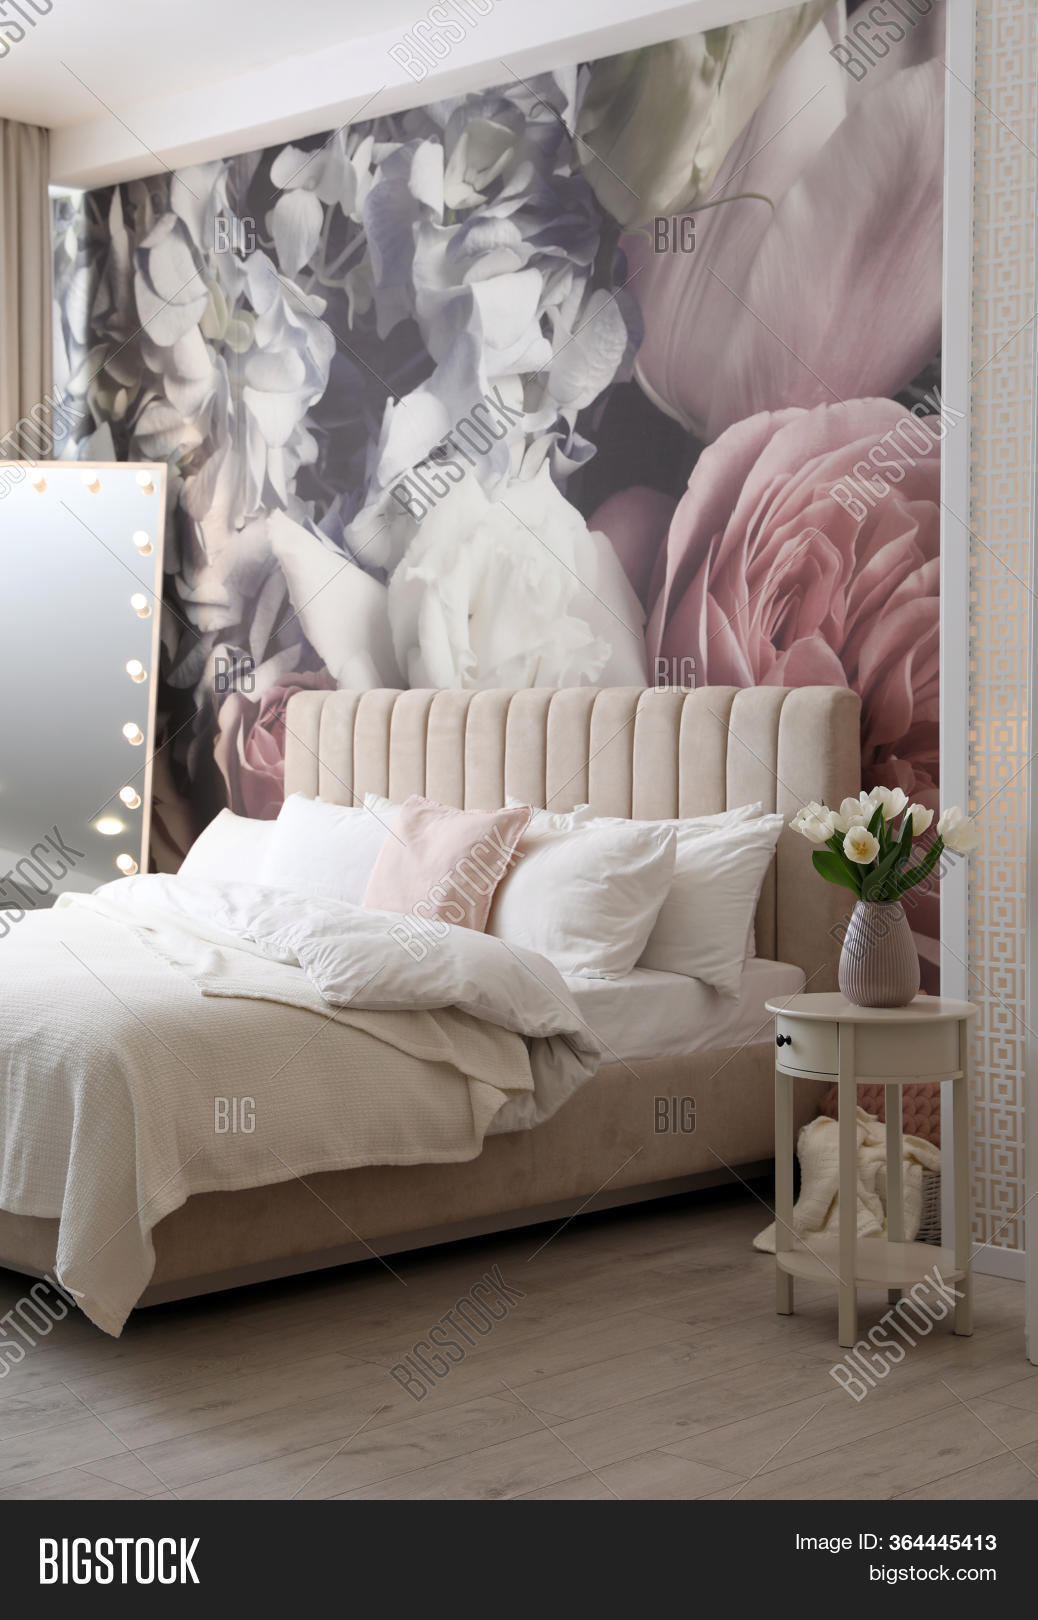 Beautiful Room Interior With Large Bed, Mirror And Floral Pattern On Wall